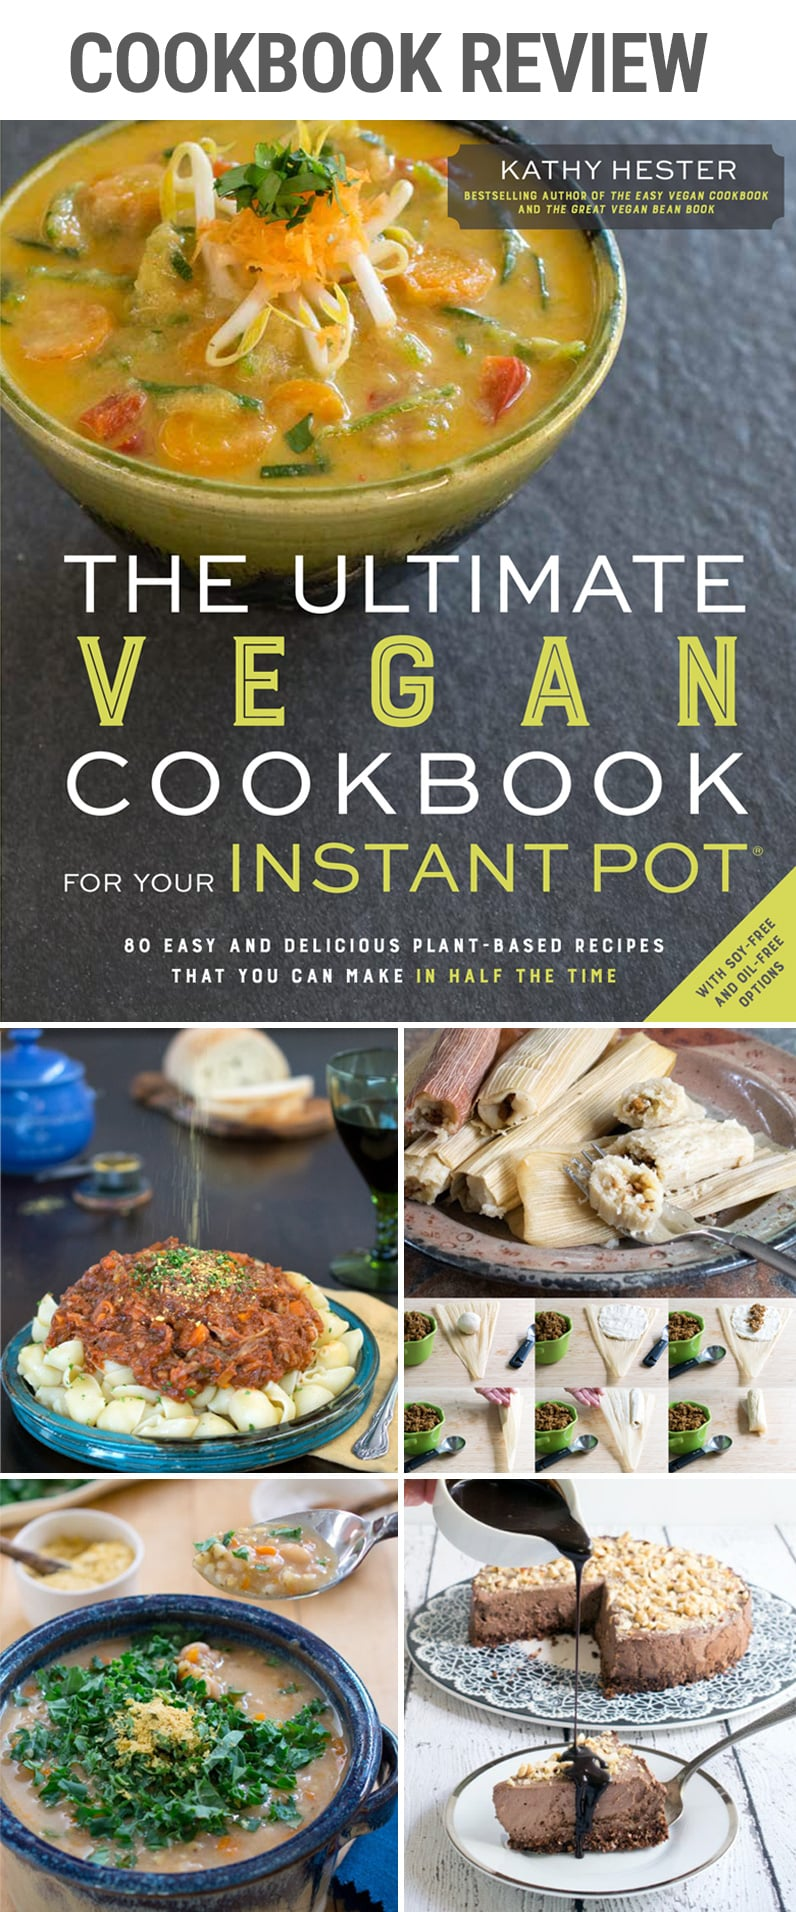 Cookbook Review: The Ultimate Vegan Cookbook For Your Instant Pot by Kathy Hester